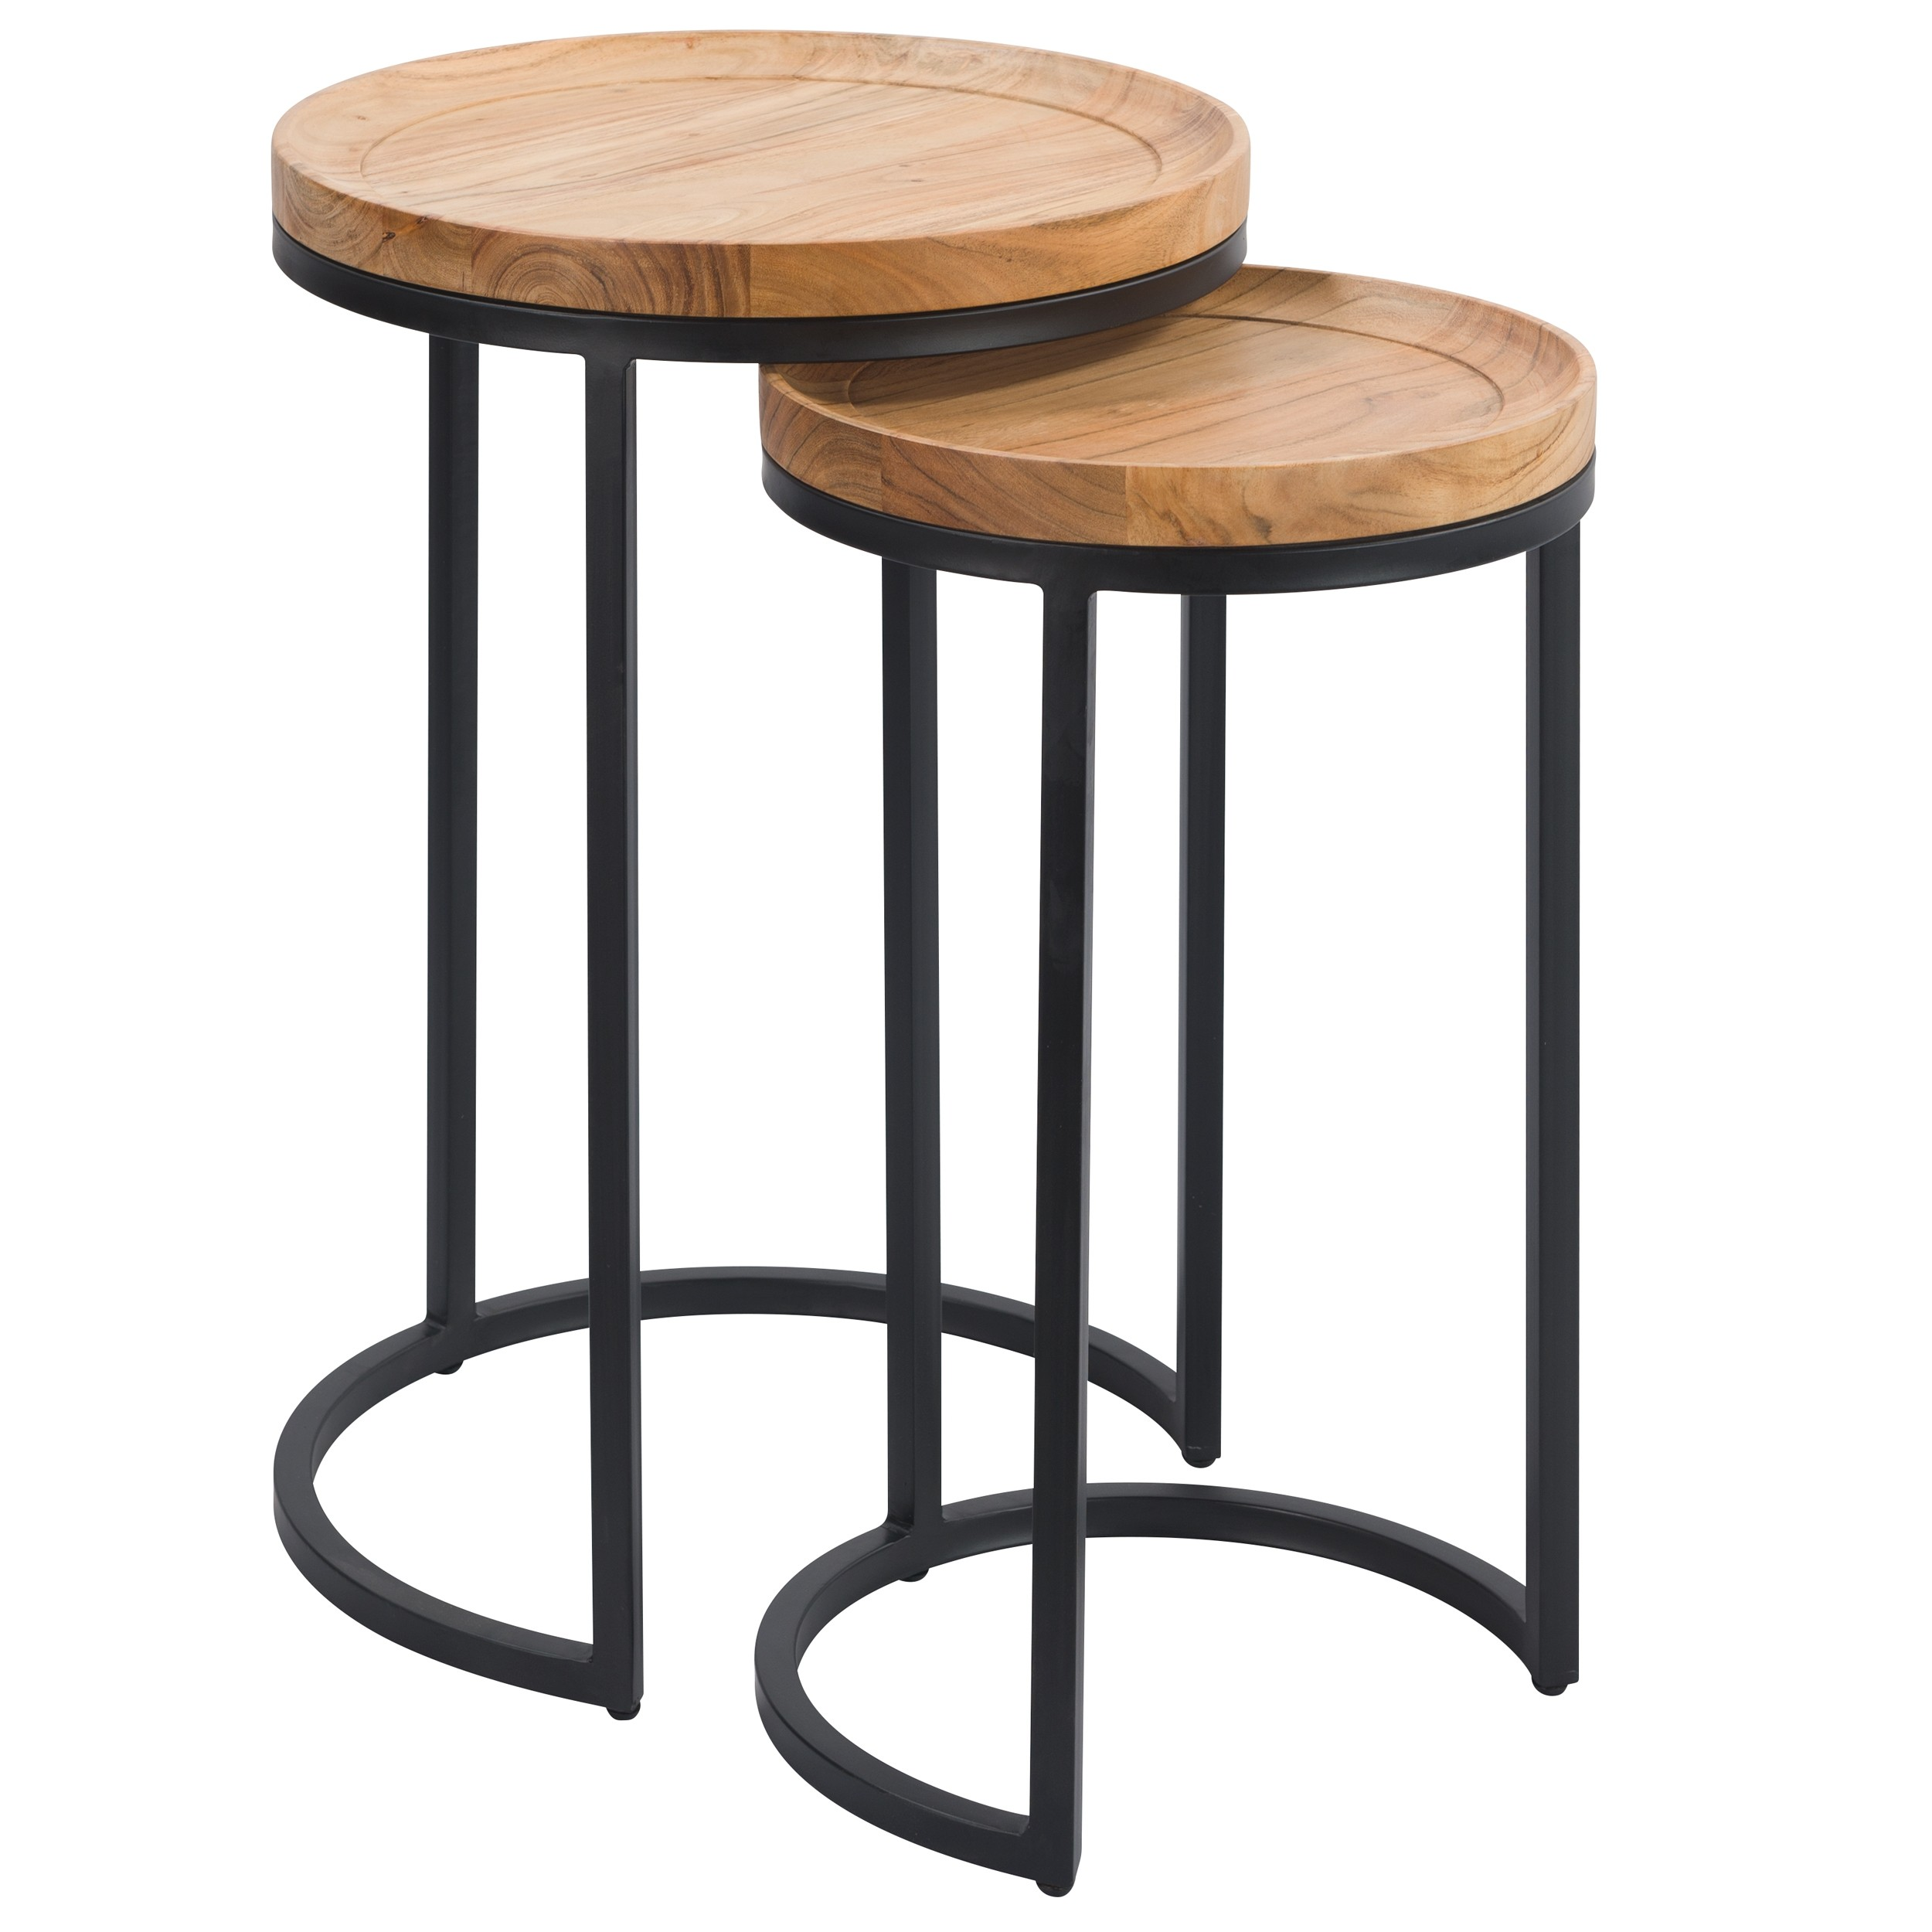 acheter table d appoint ronde lot de 2